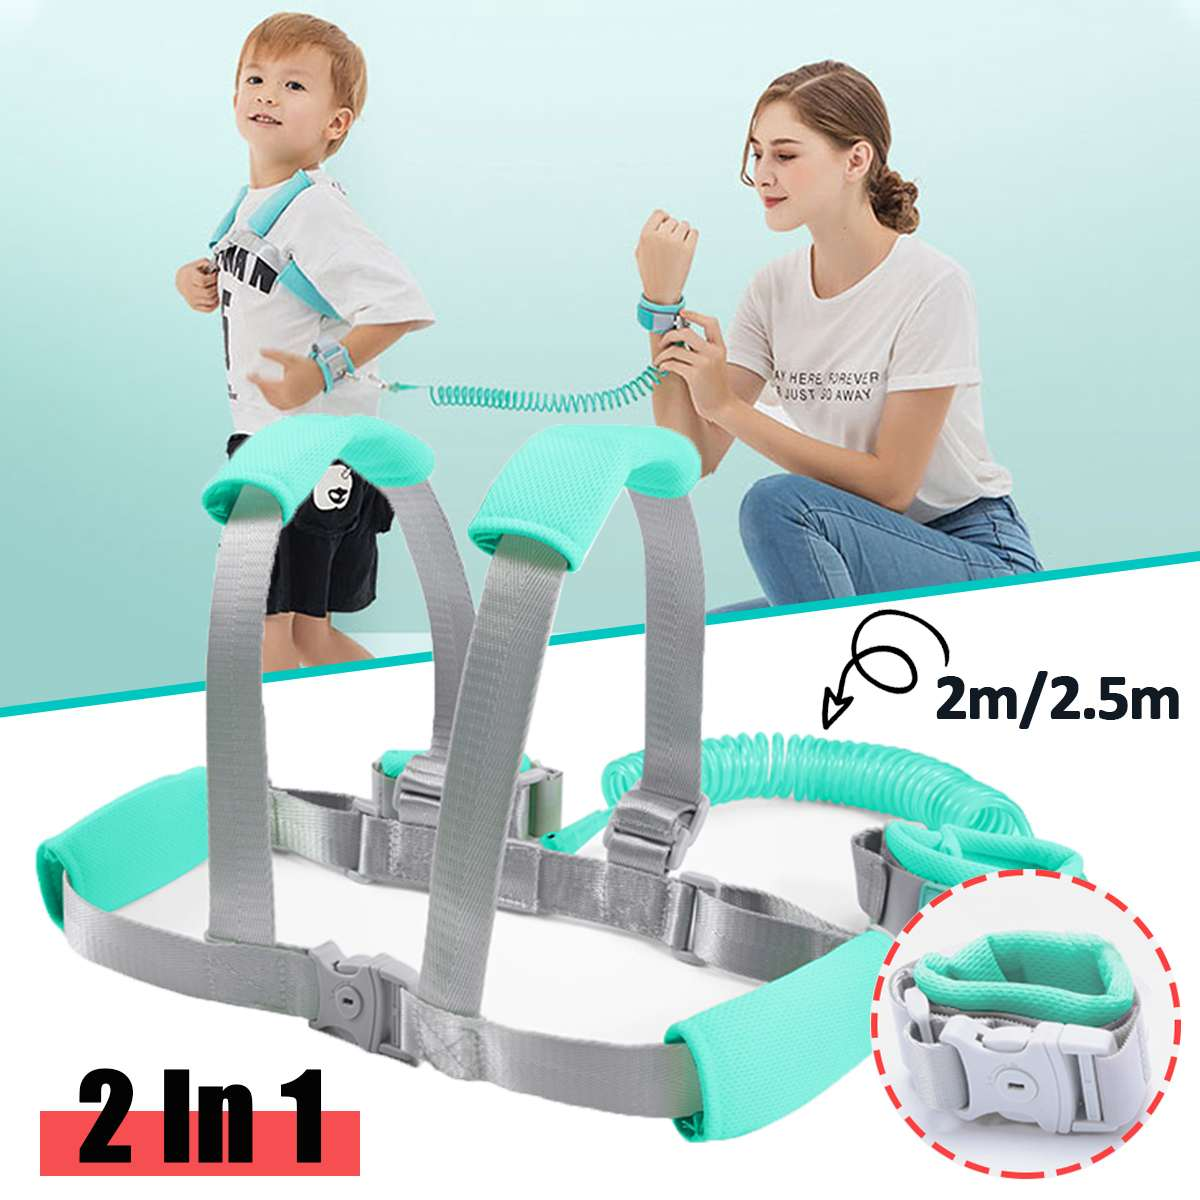 Toddler Anti Lost Wrist Link Add Key Lock Toddler Leash Baby Walker Safety Belt Wristband Walking Strap Rope Adjustable Harness